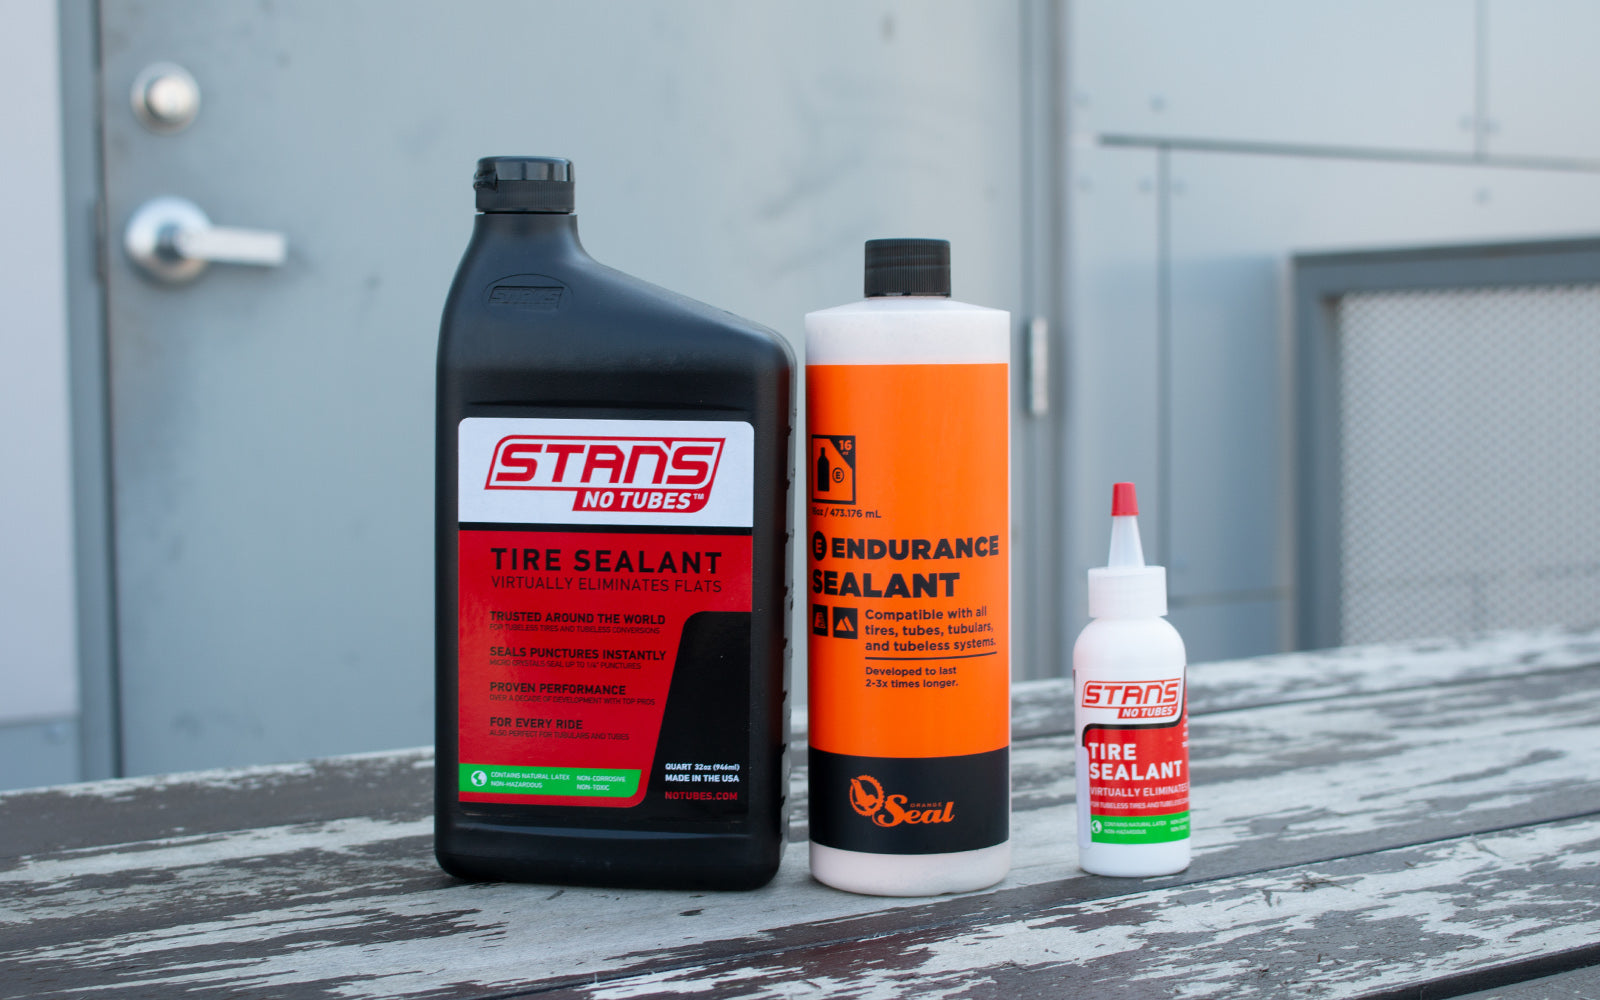 Five Way to Help Your Bike Feel Like New - Add More Sealant